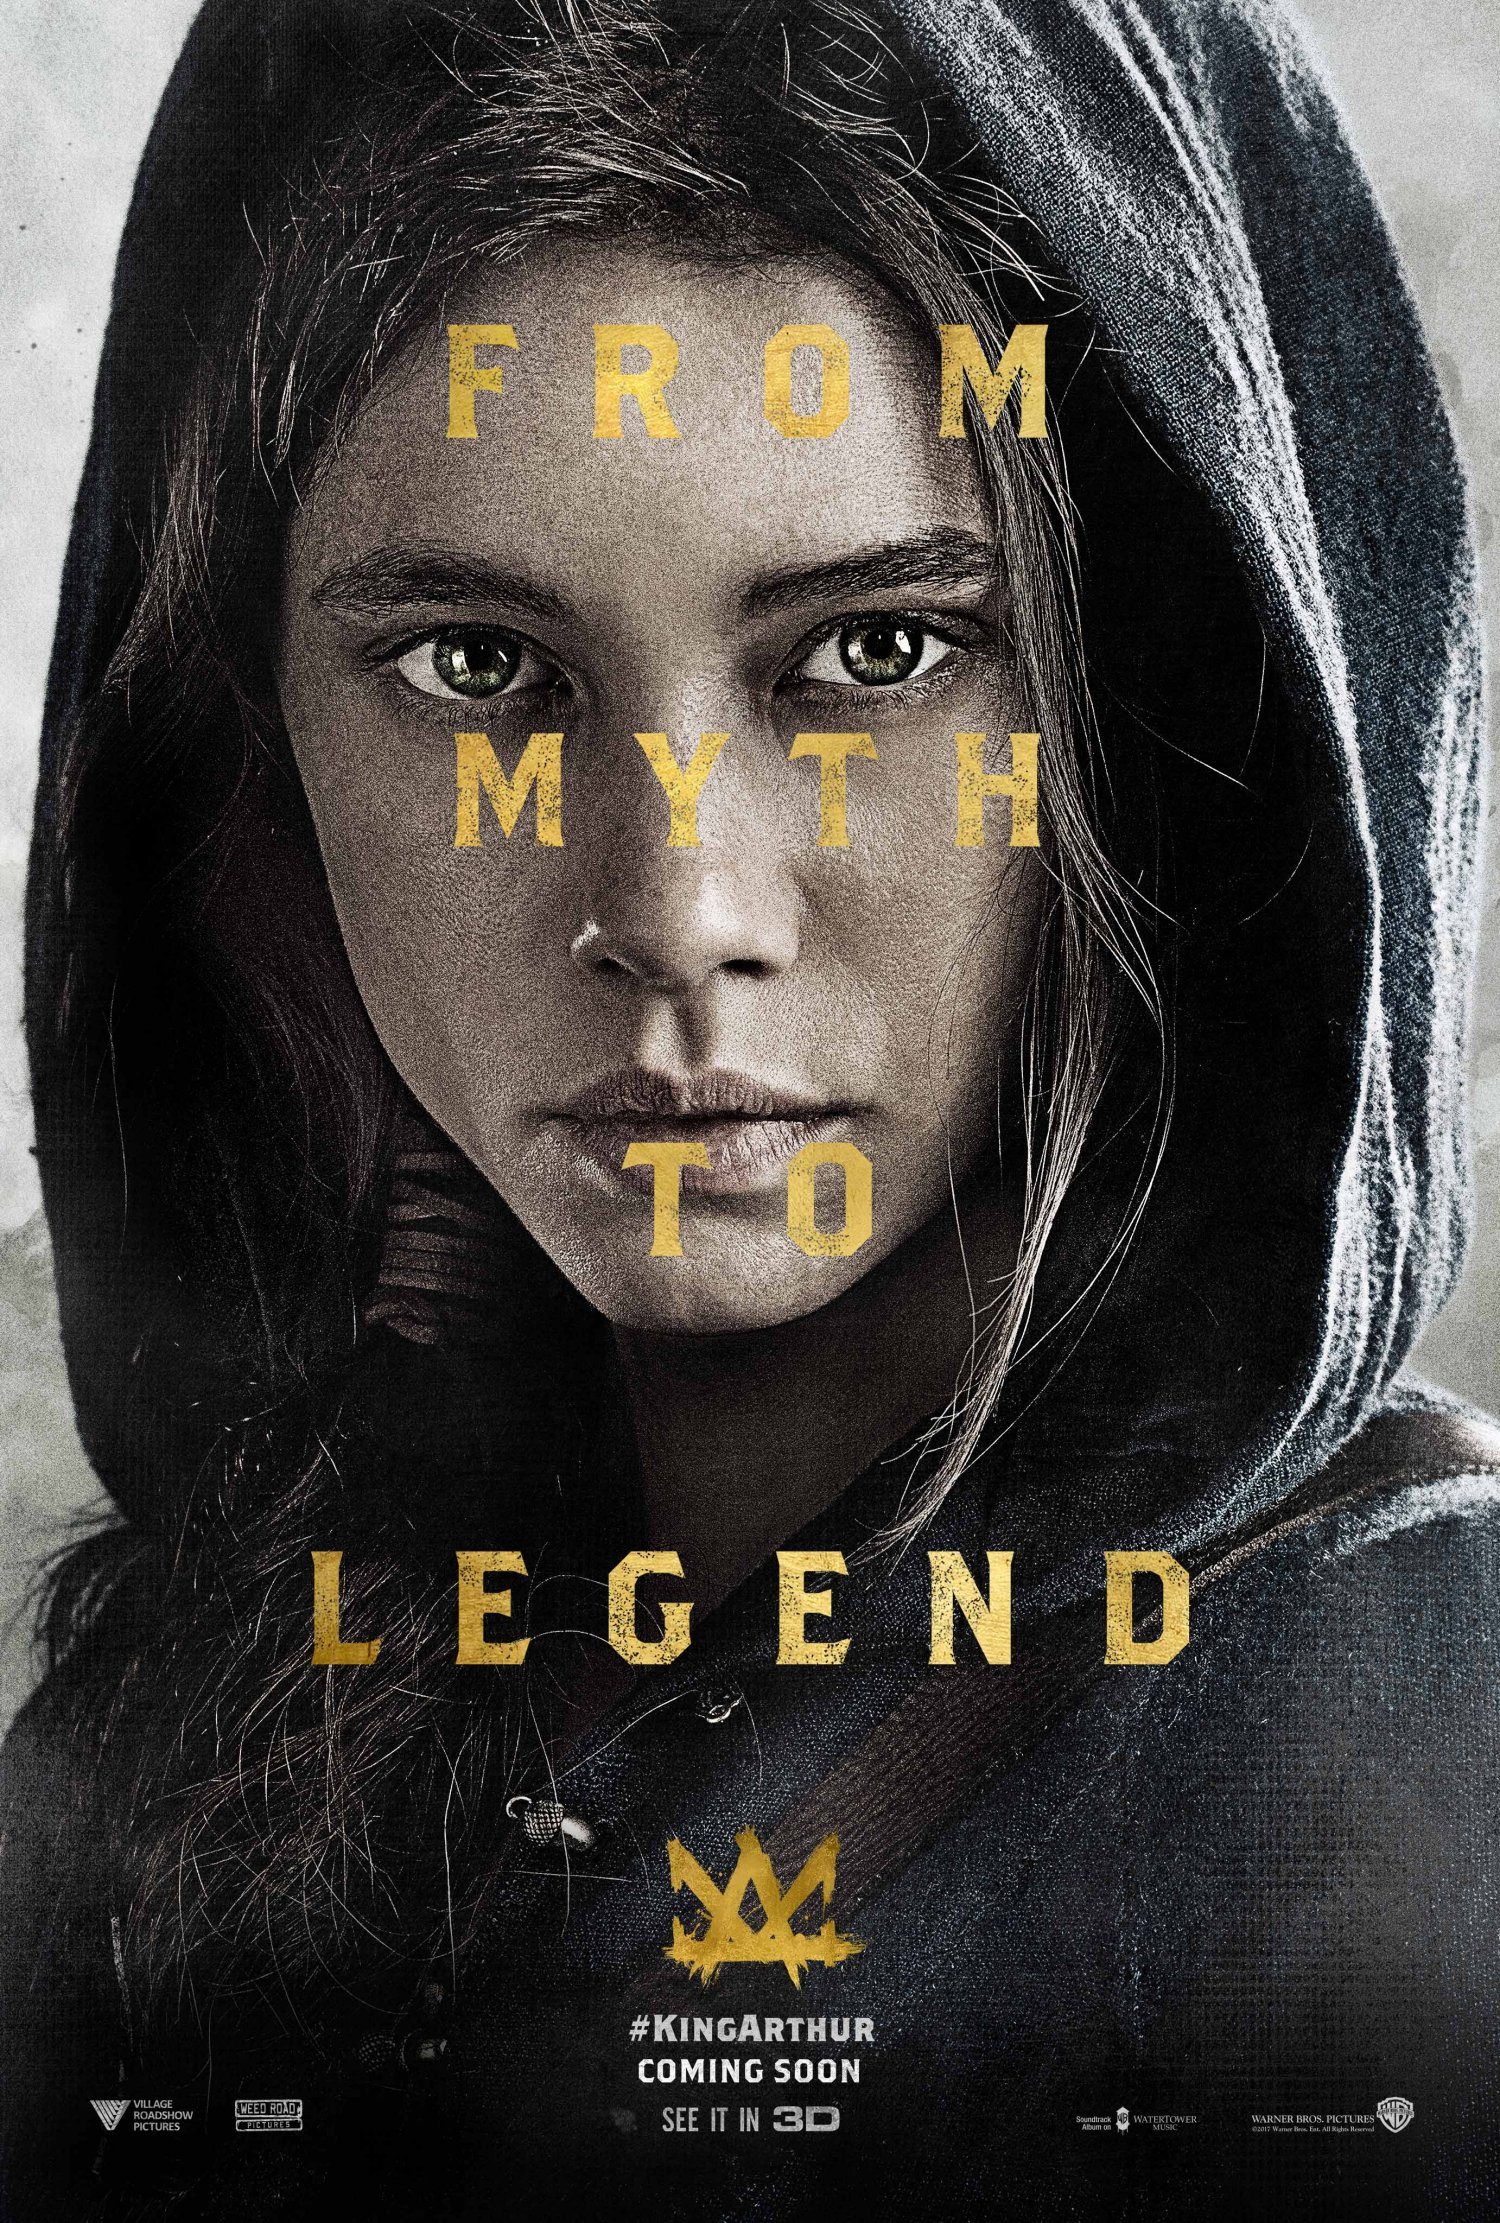 Astrid Bergès-Frisbey as The Mage